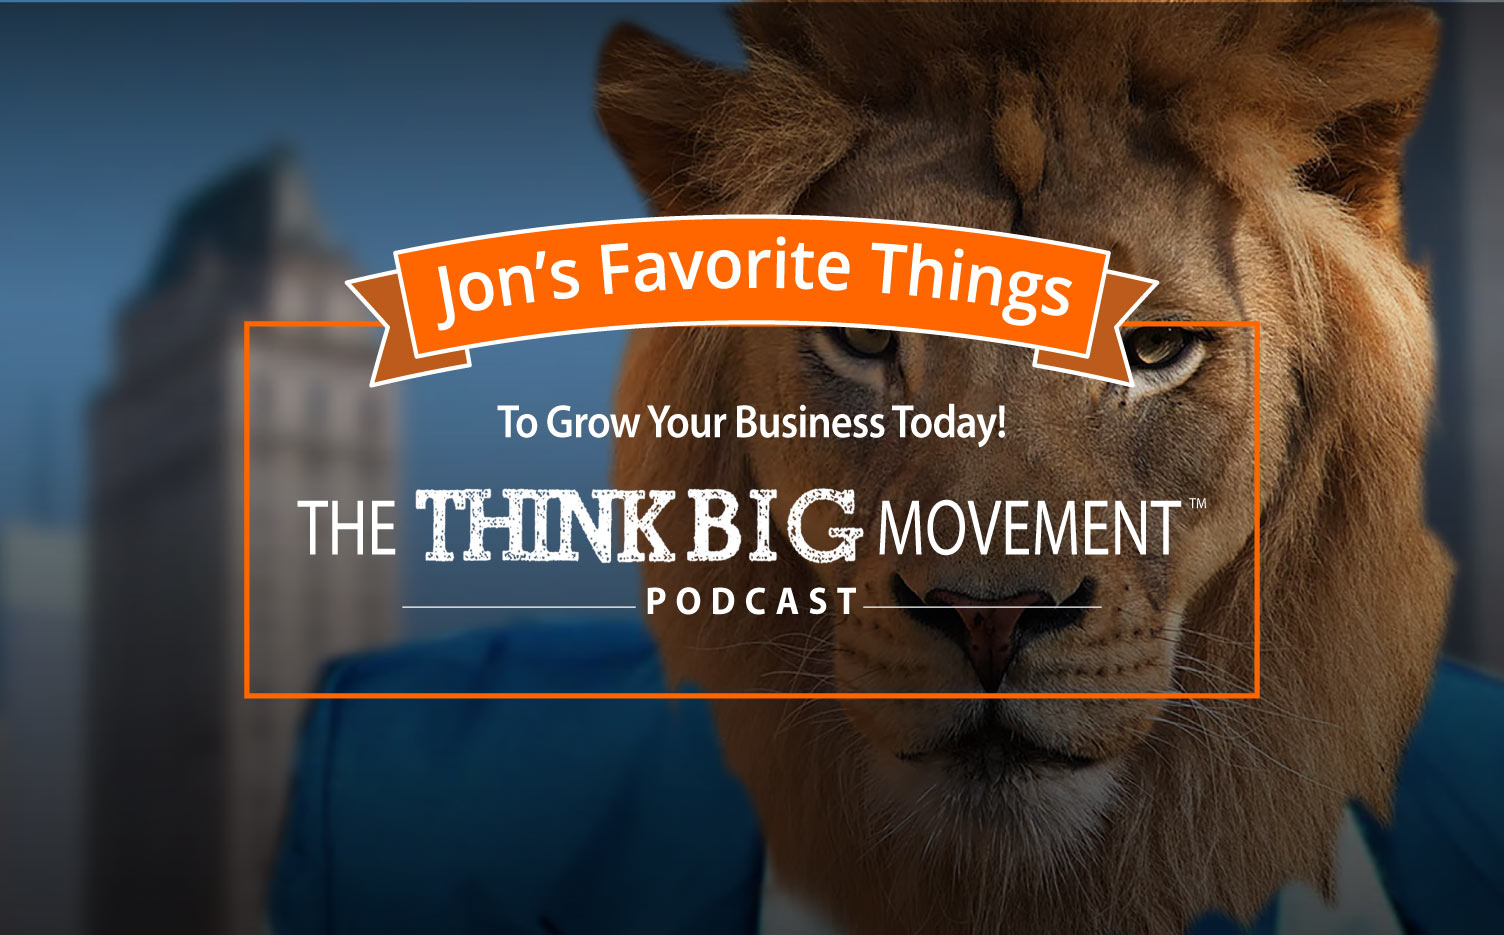 The Think Big Movement- Podcast- Jon Dwoskin's Favorite Things